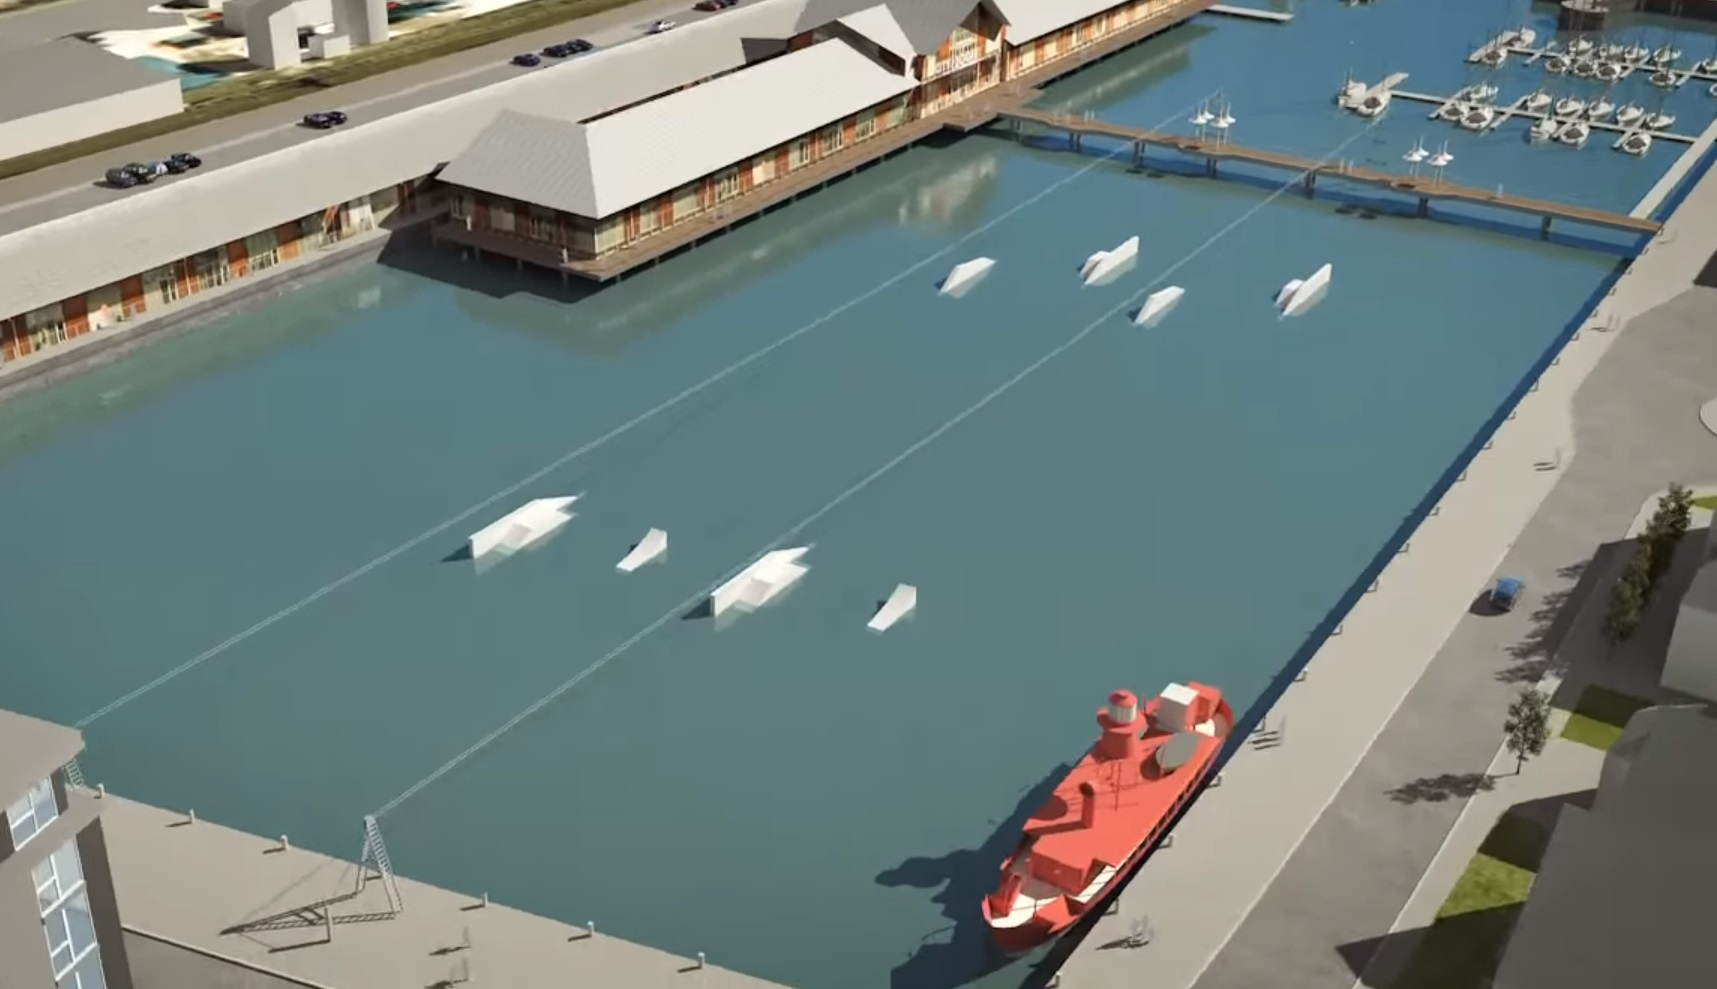 An image from a fly-through video simulation of the waterfront area shows the wakeboarding site.